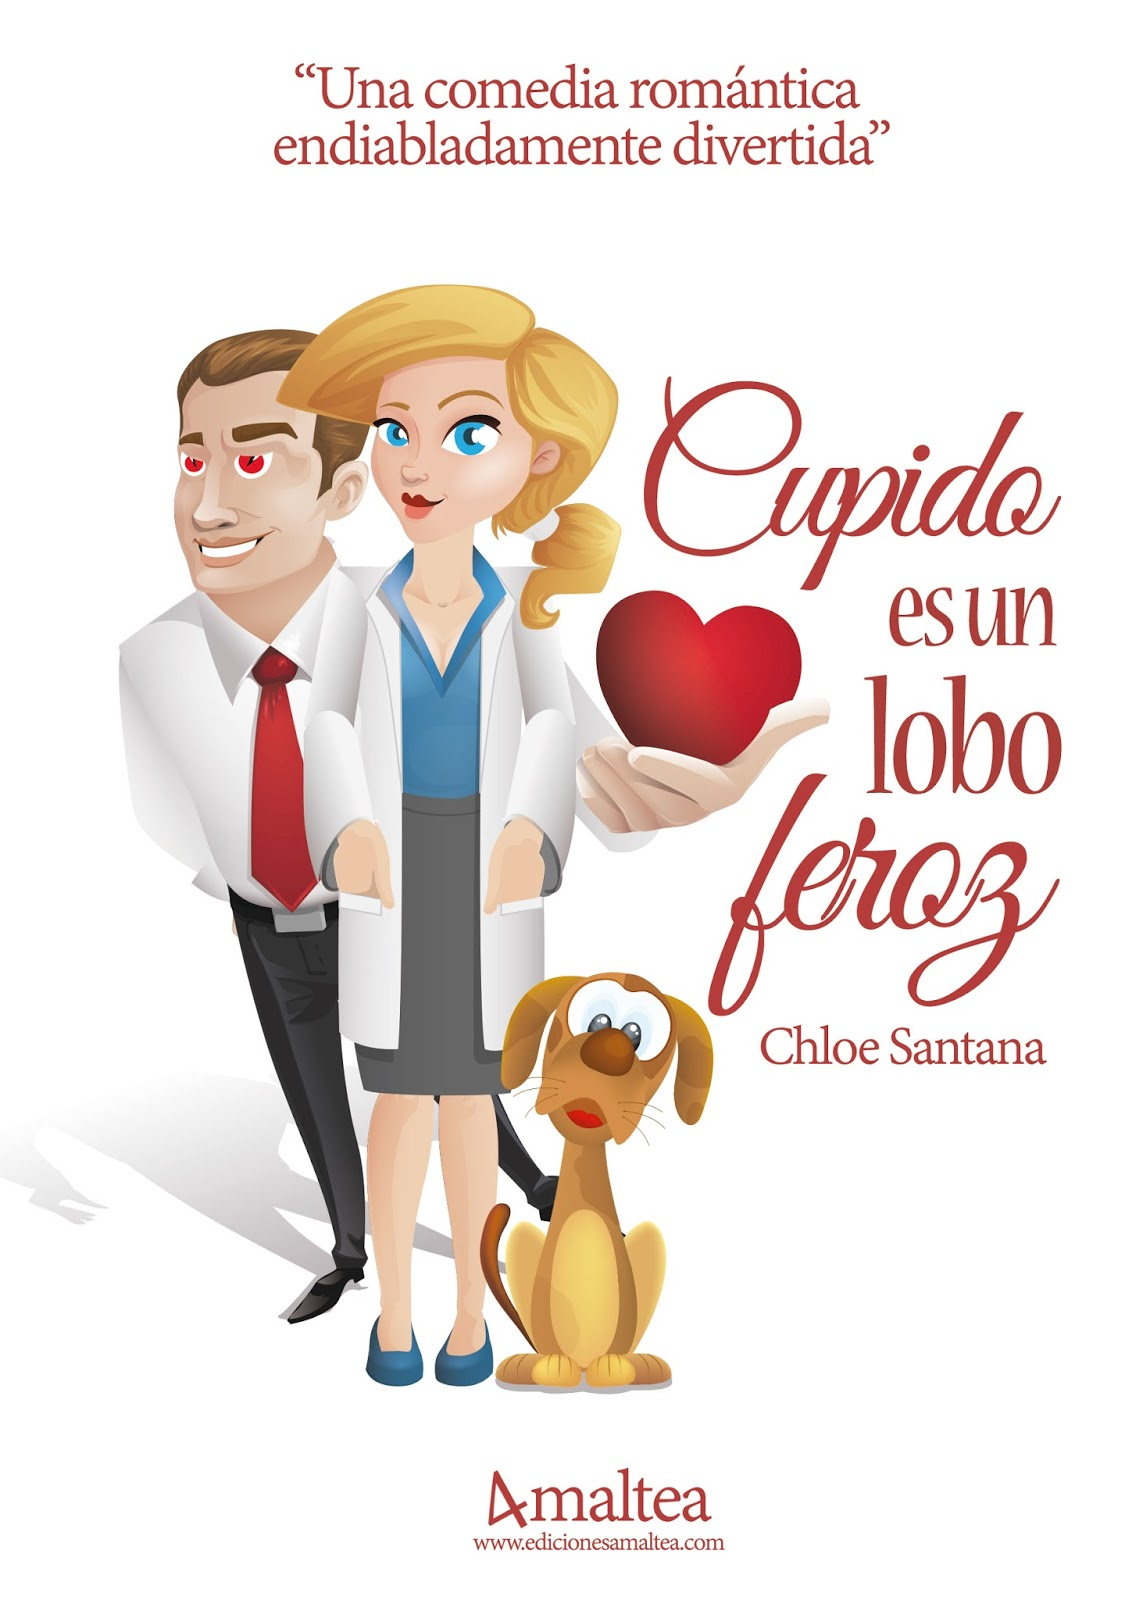 cupidoesunloboferoz by páginasdechocolate